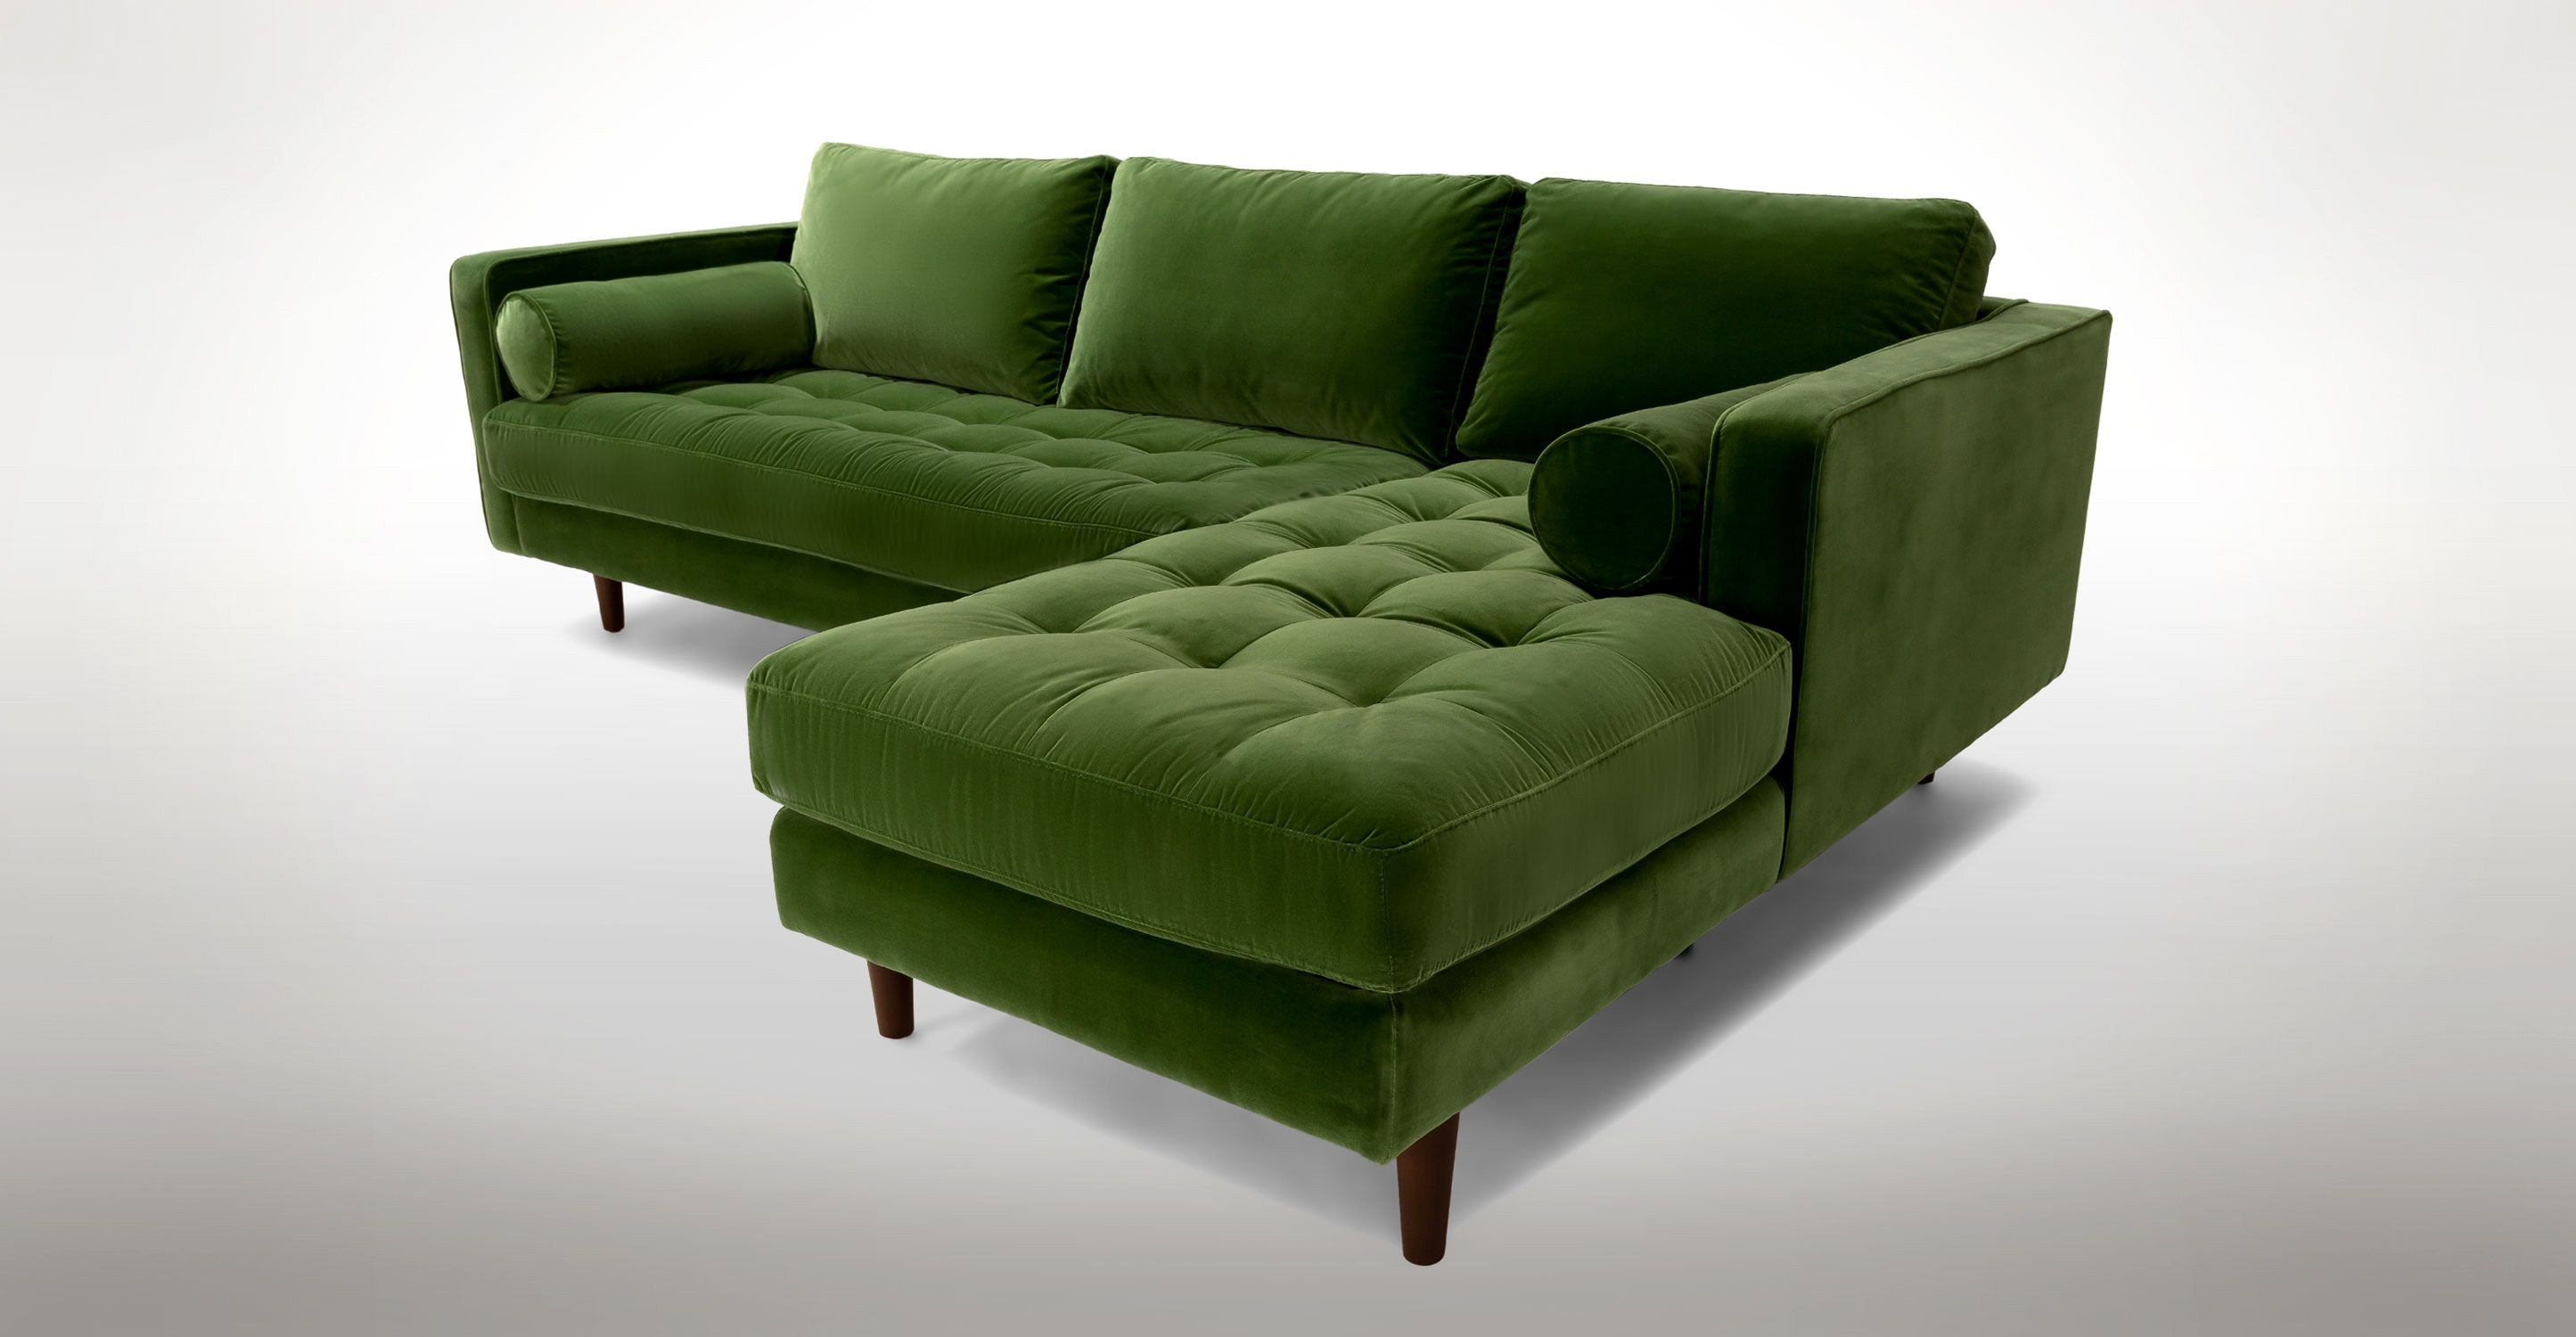 Green Velvet Right Sectional Tufted Article Sven Modern Furniture Sofas Seccionales Muebles Moderno